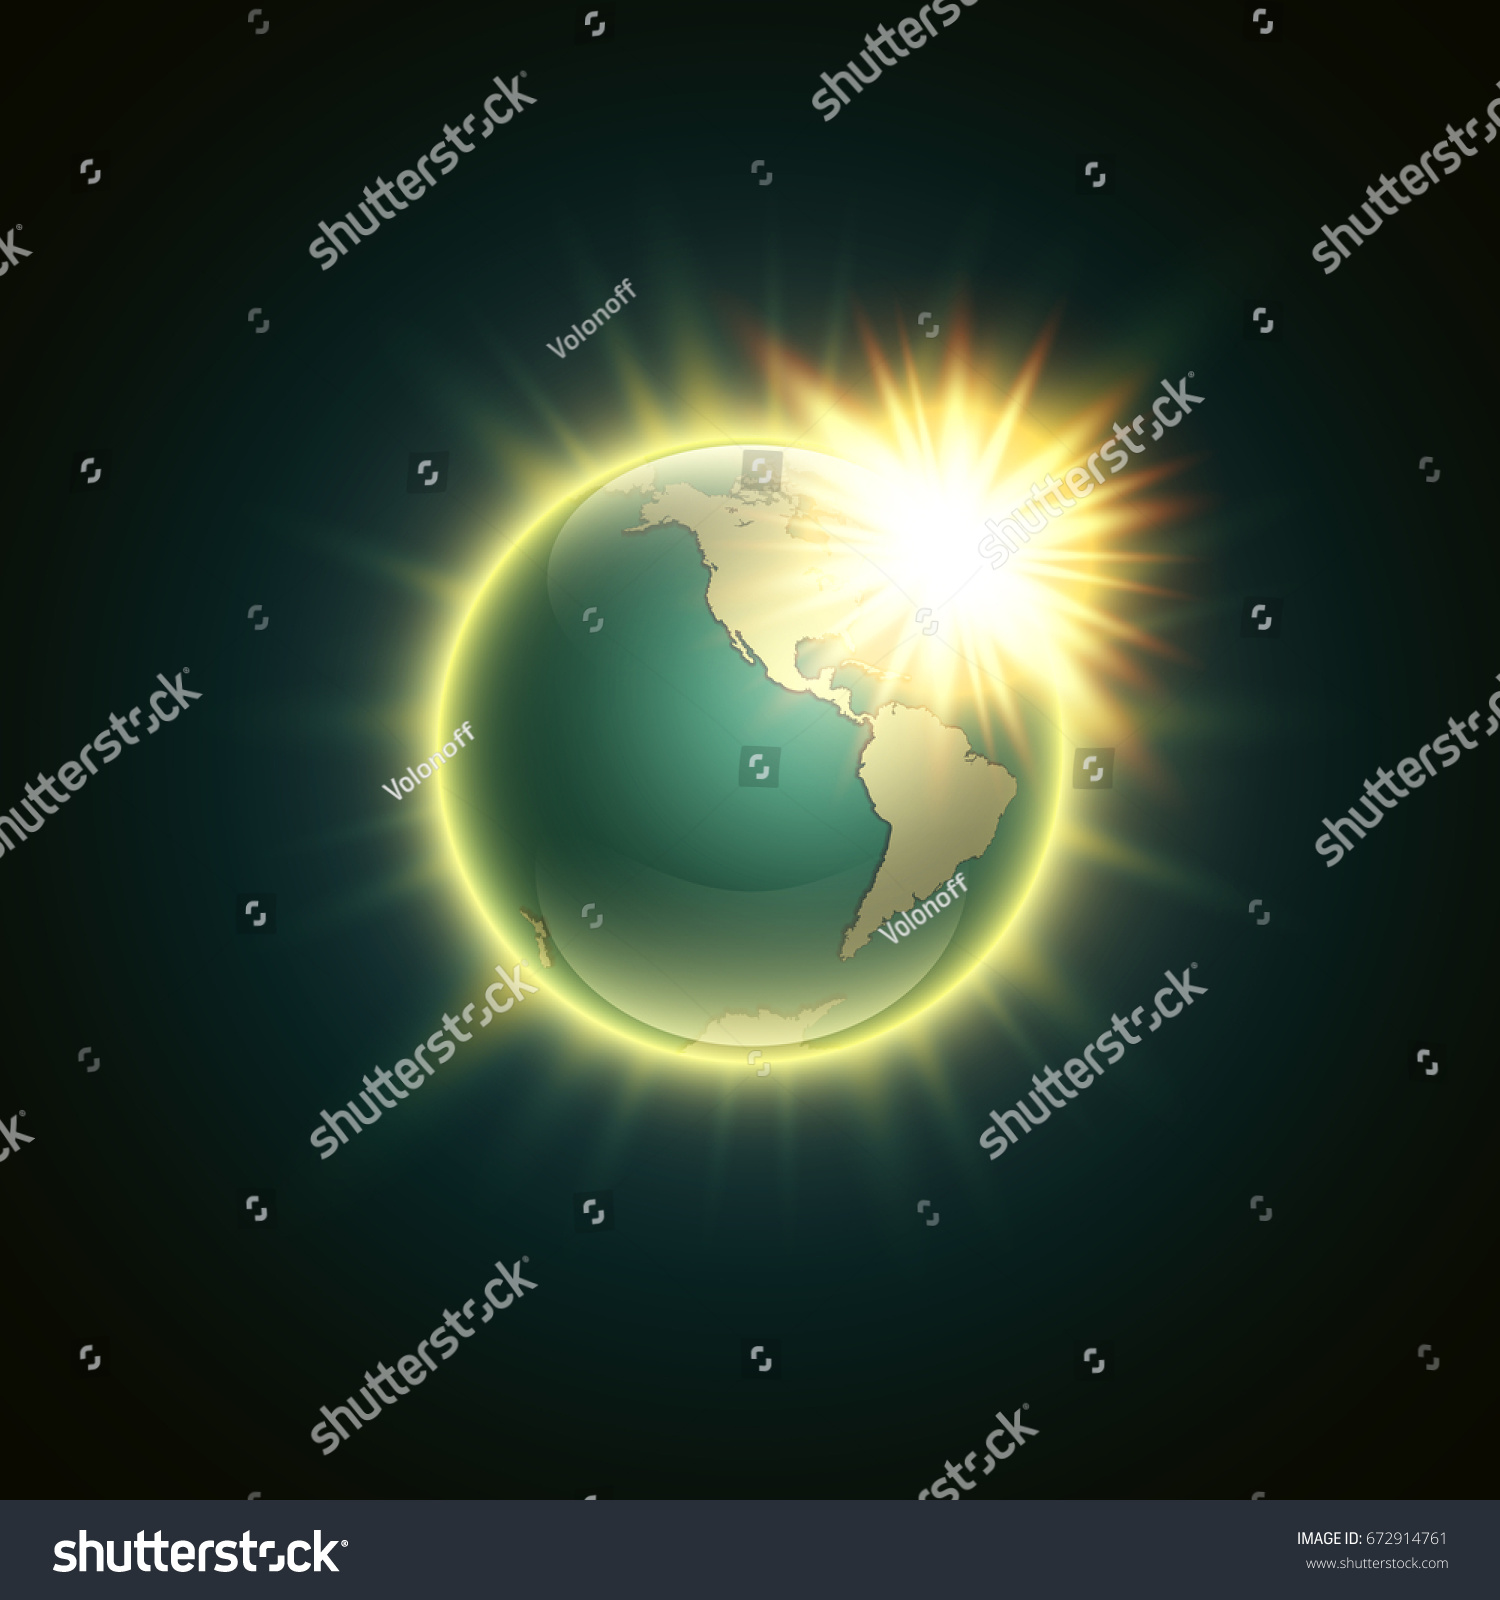 World map rising sun banner globe stock vector 672914761 shutterstock world map with rising sun banner globe icon in space sunlight poster planet earth gumiabroncs Gallery